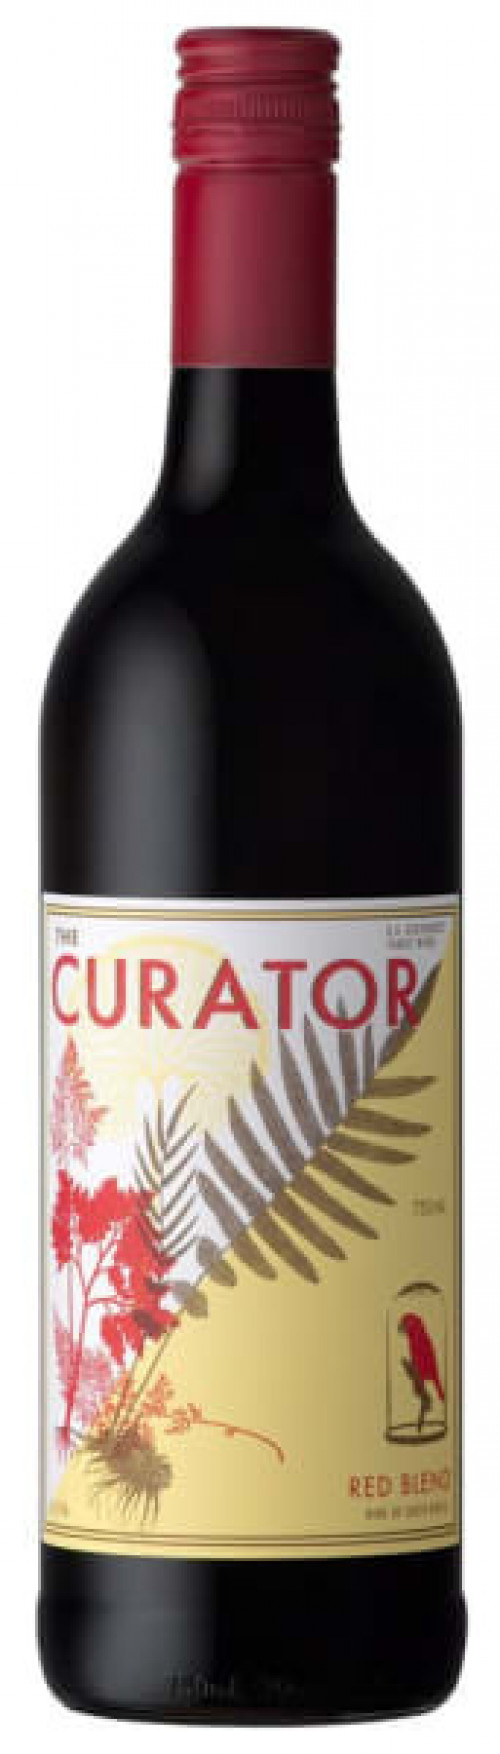 2019 The Curator Red Blend 750ml